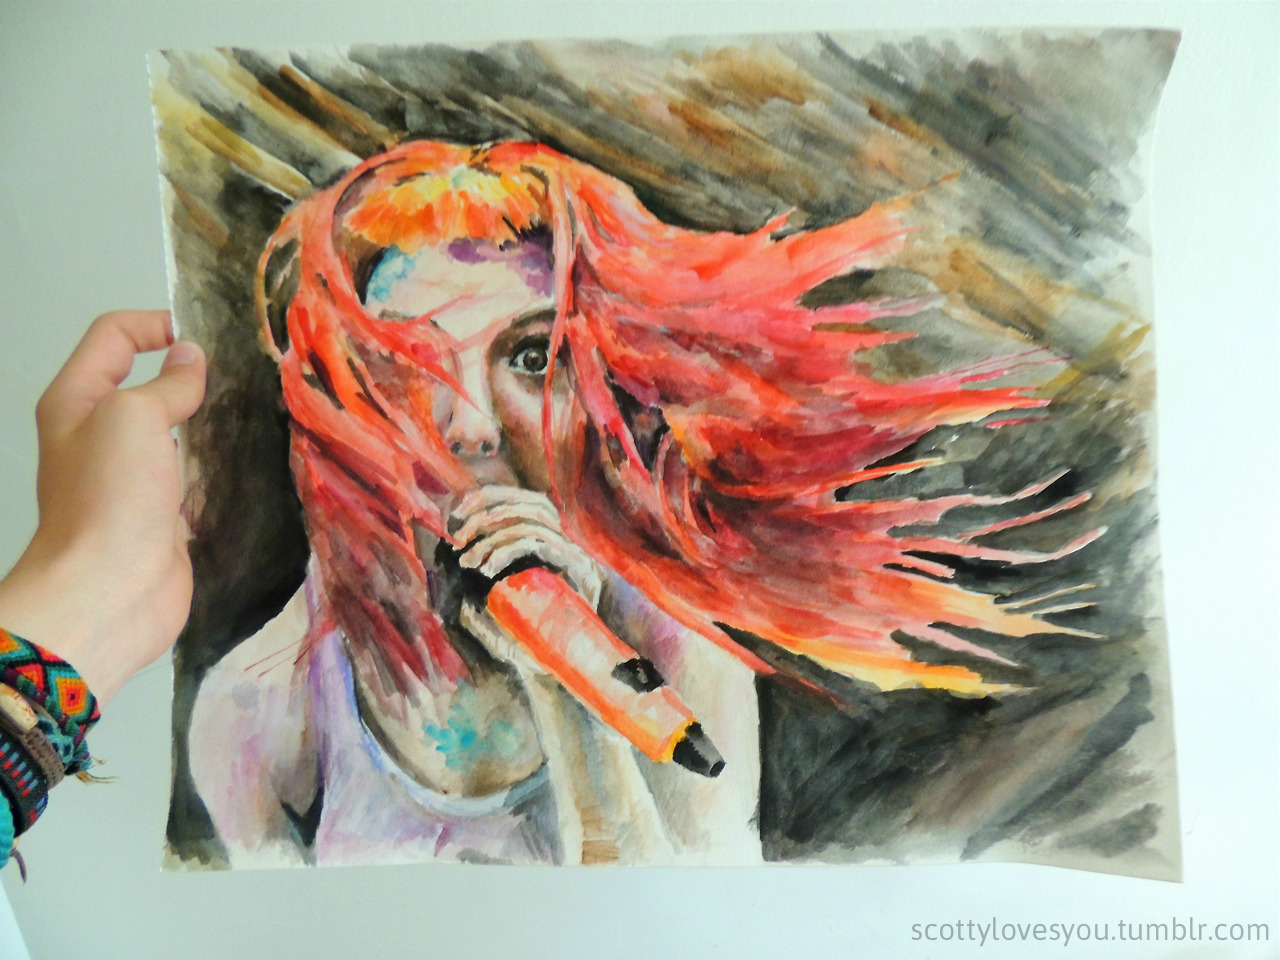 my painting of Hayley Williams